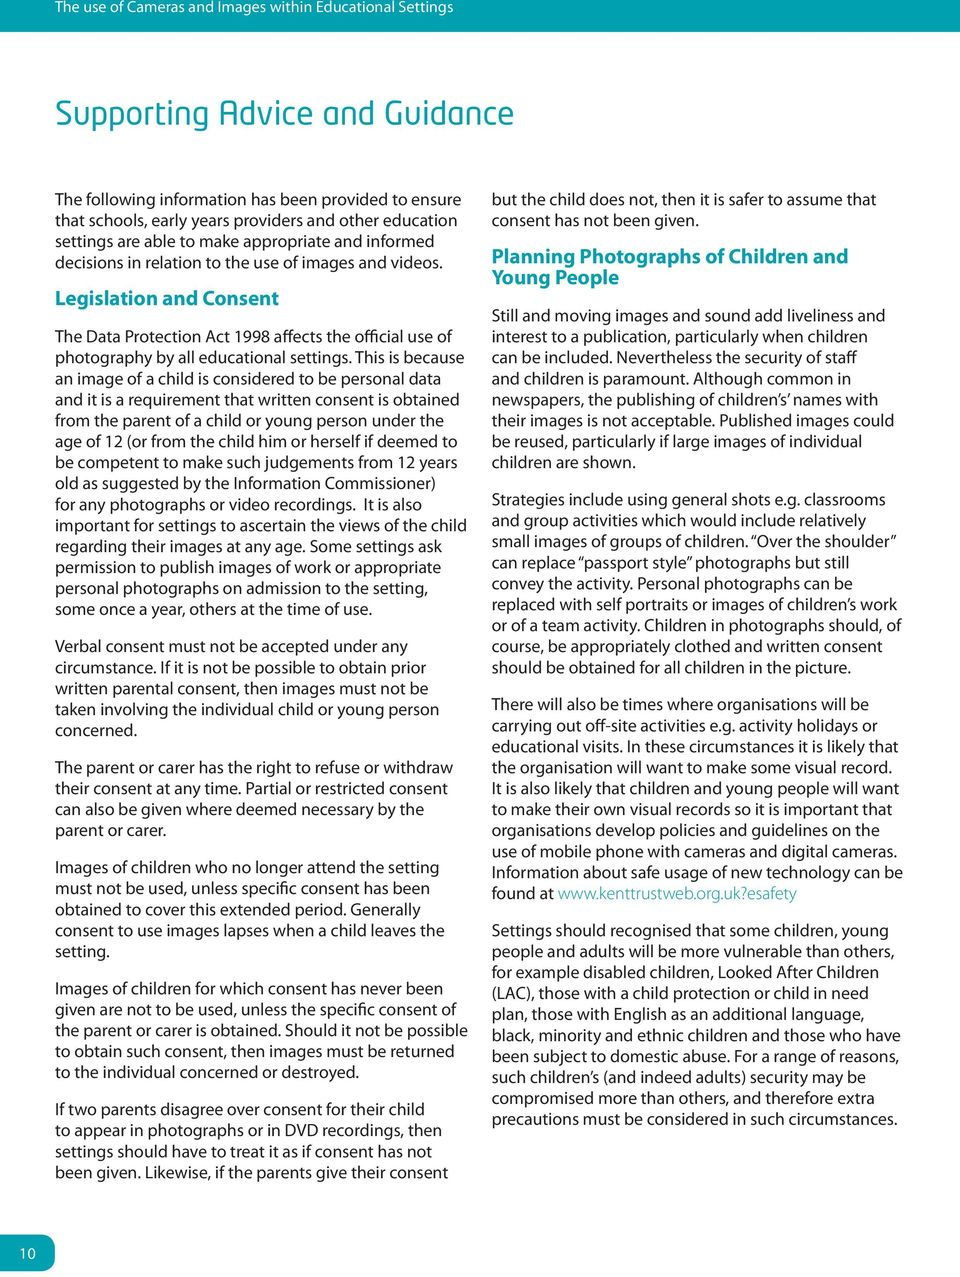 protection of children and vulnerable adults Child and vulnerable adults' protection and welfare policy statement  national  policy for the protection of vulnerable adults from abuse and neglect, hse.